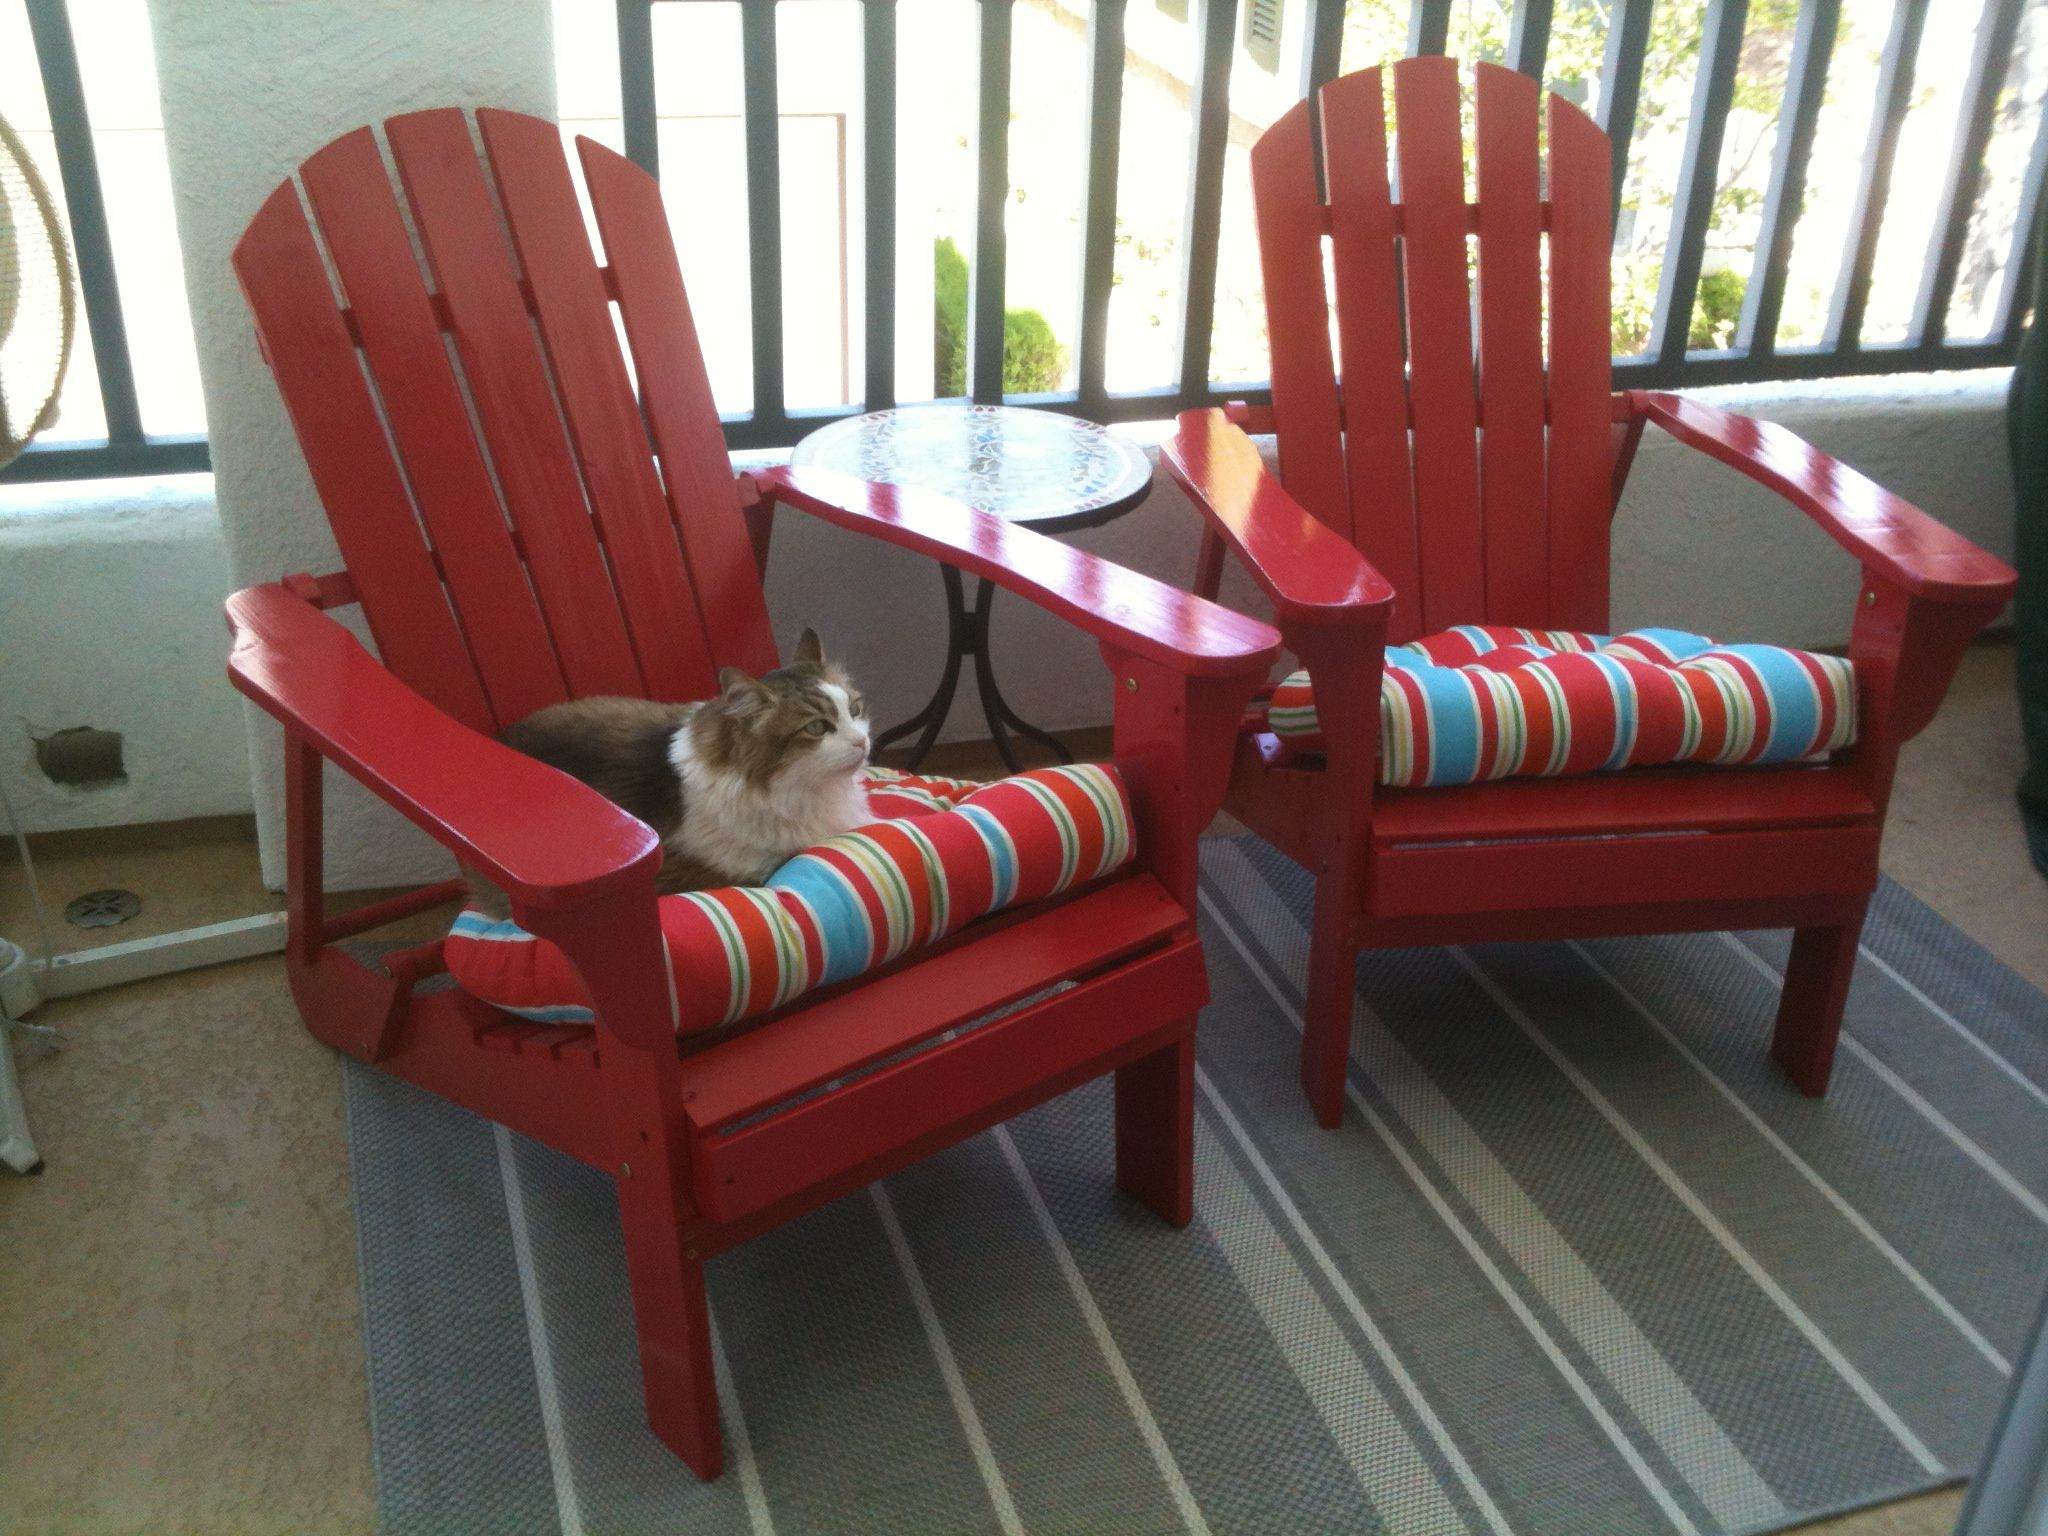 Folding adirondack chairs and chair pads from Marshall s Mosaic